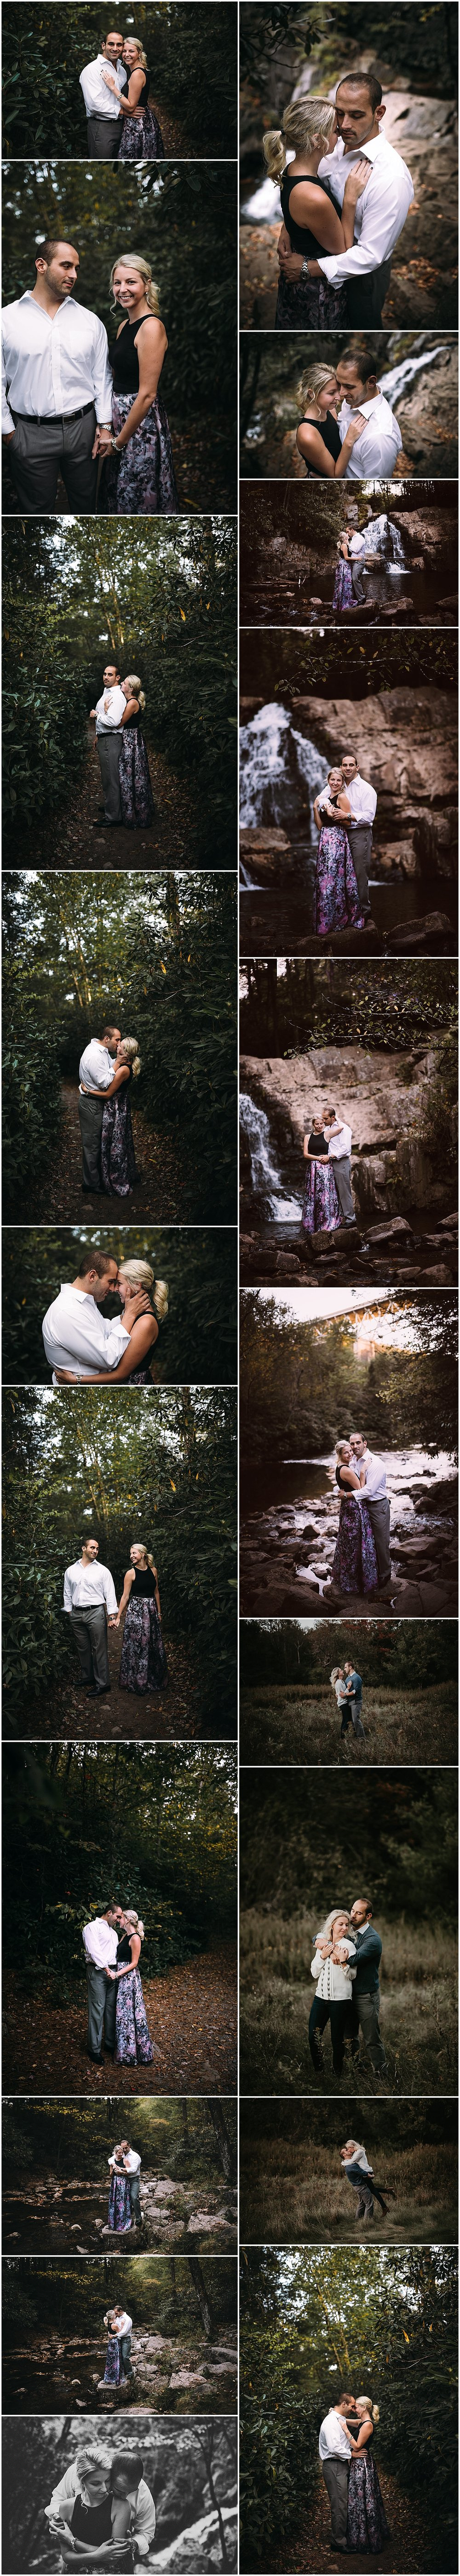 Central-PA-engagement-wedding-Photographer-in-wapwallopen-PA-NEPA_0266.jpg